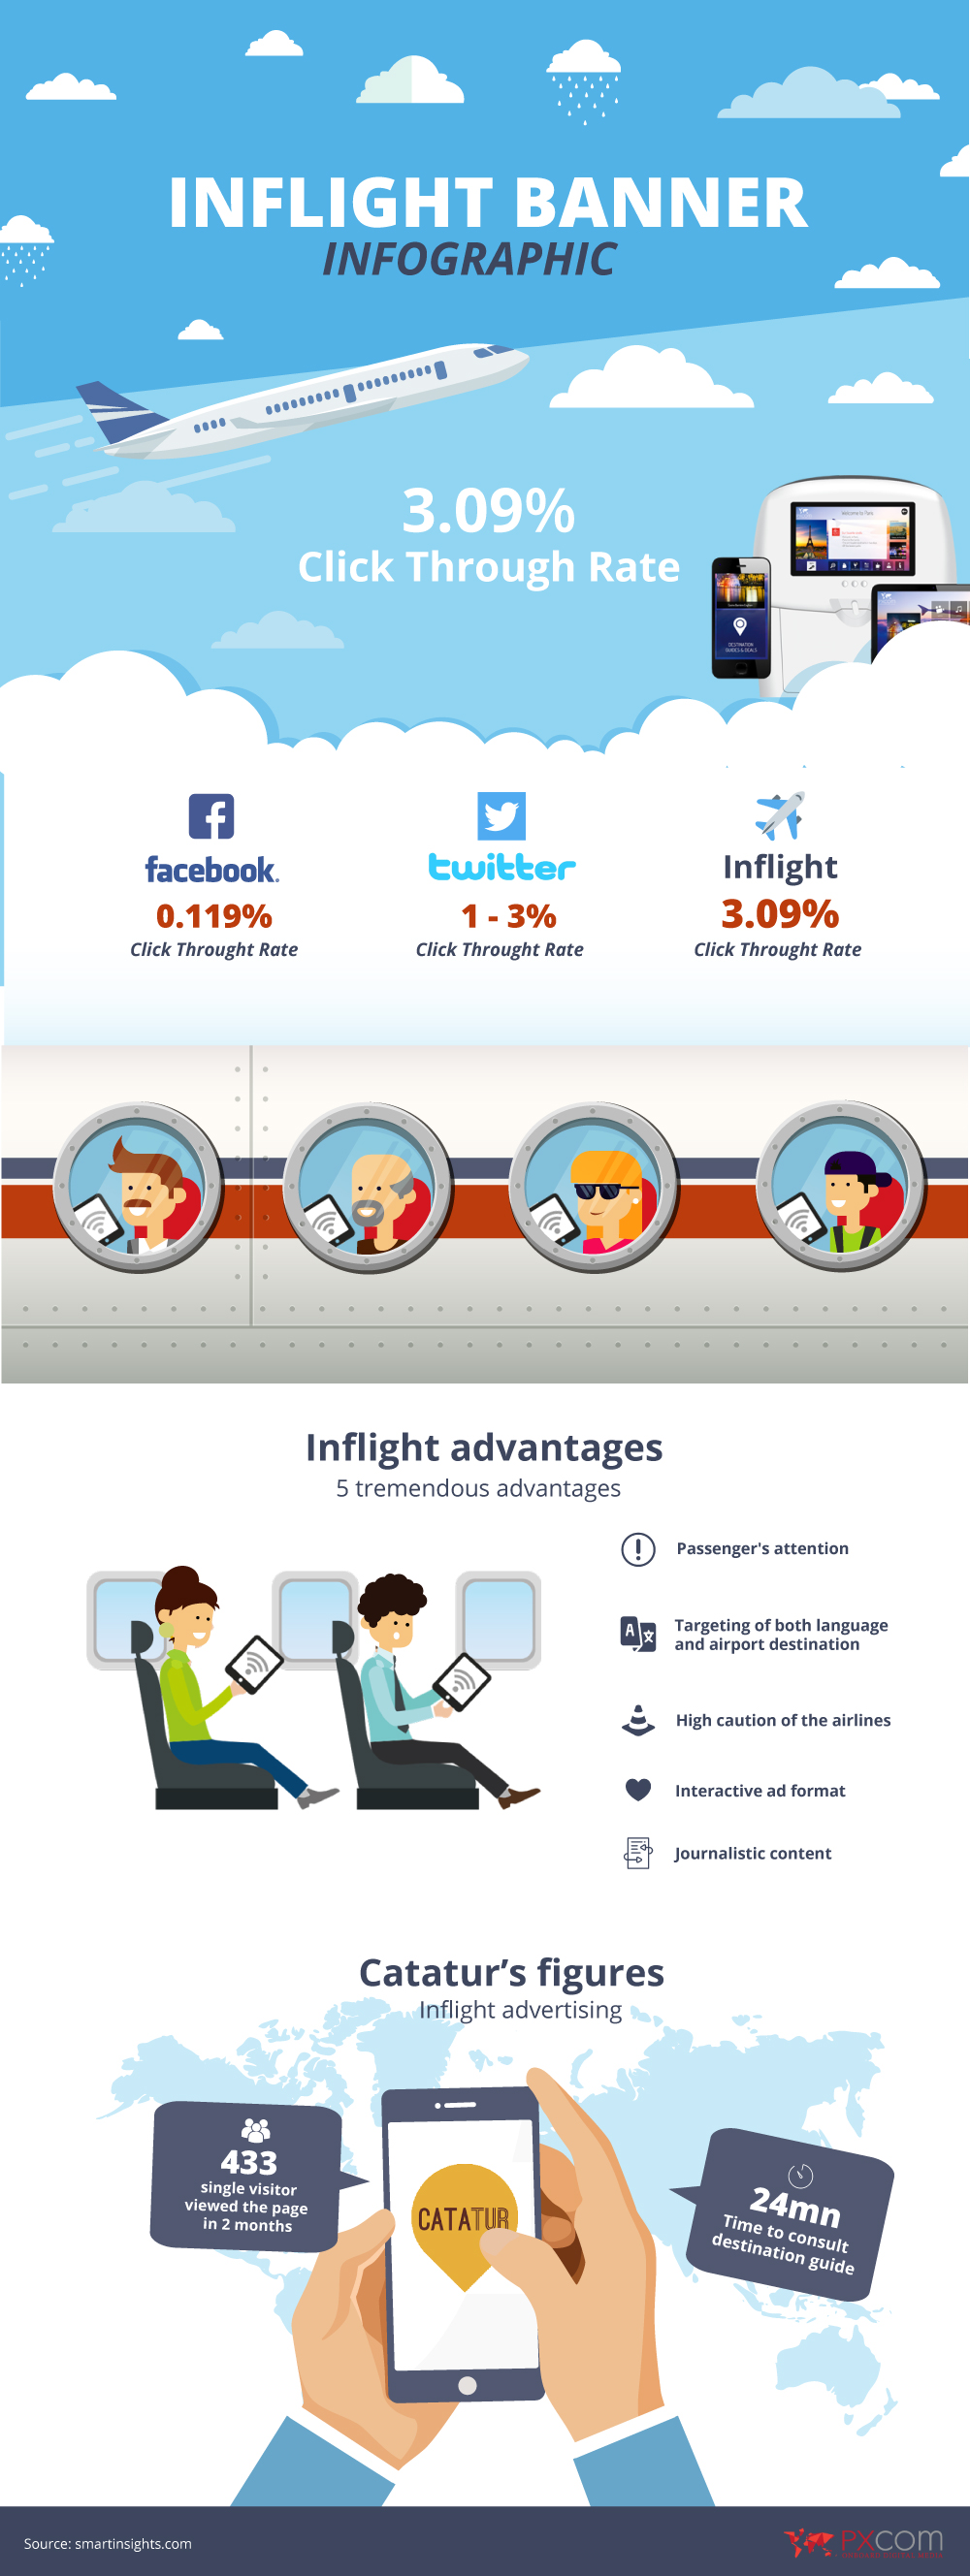 inflight banner infographic